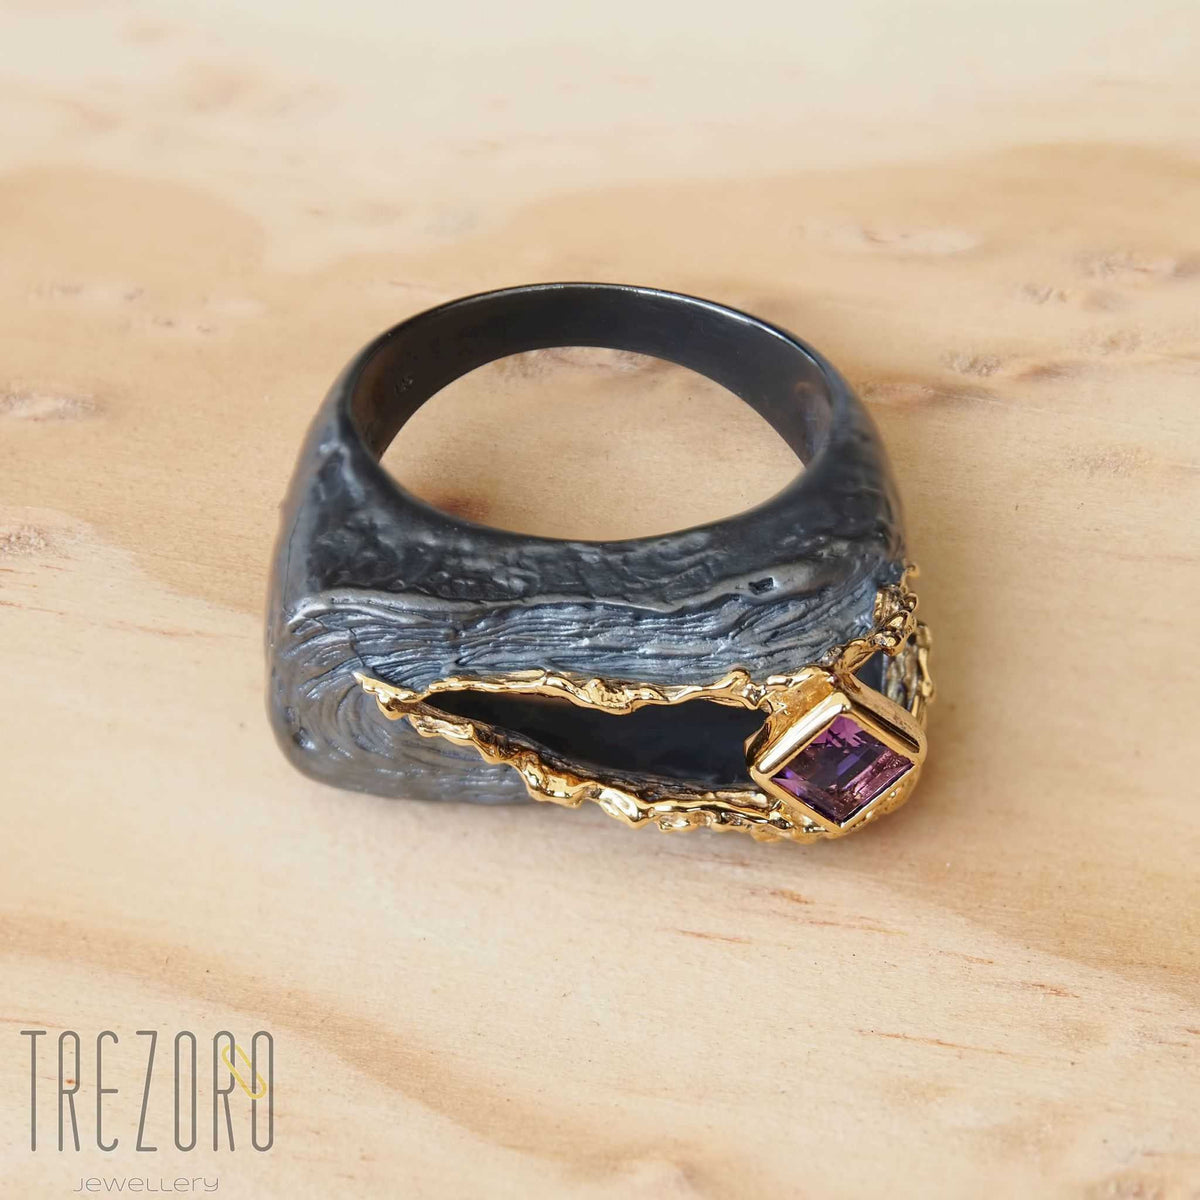 NEW amazing Surprise Ring. Oxidised and  Gold Plated Sterling Silver wih natural Amethyst. On wood 2.